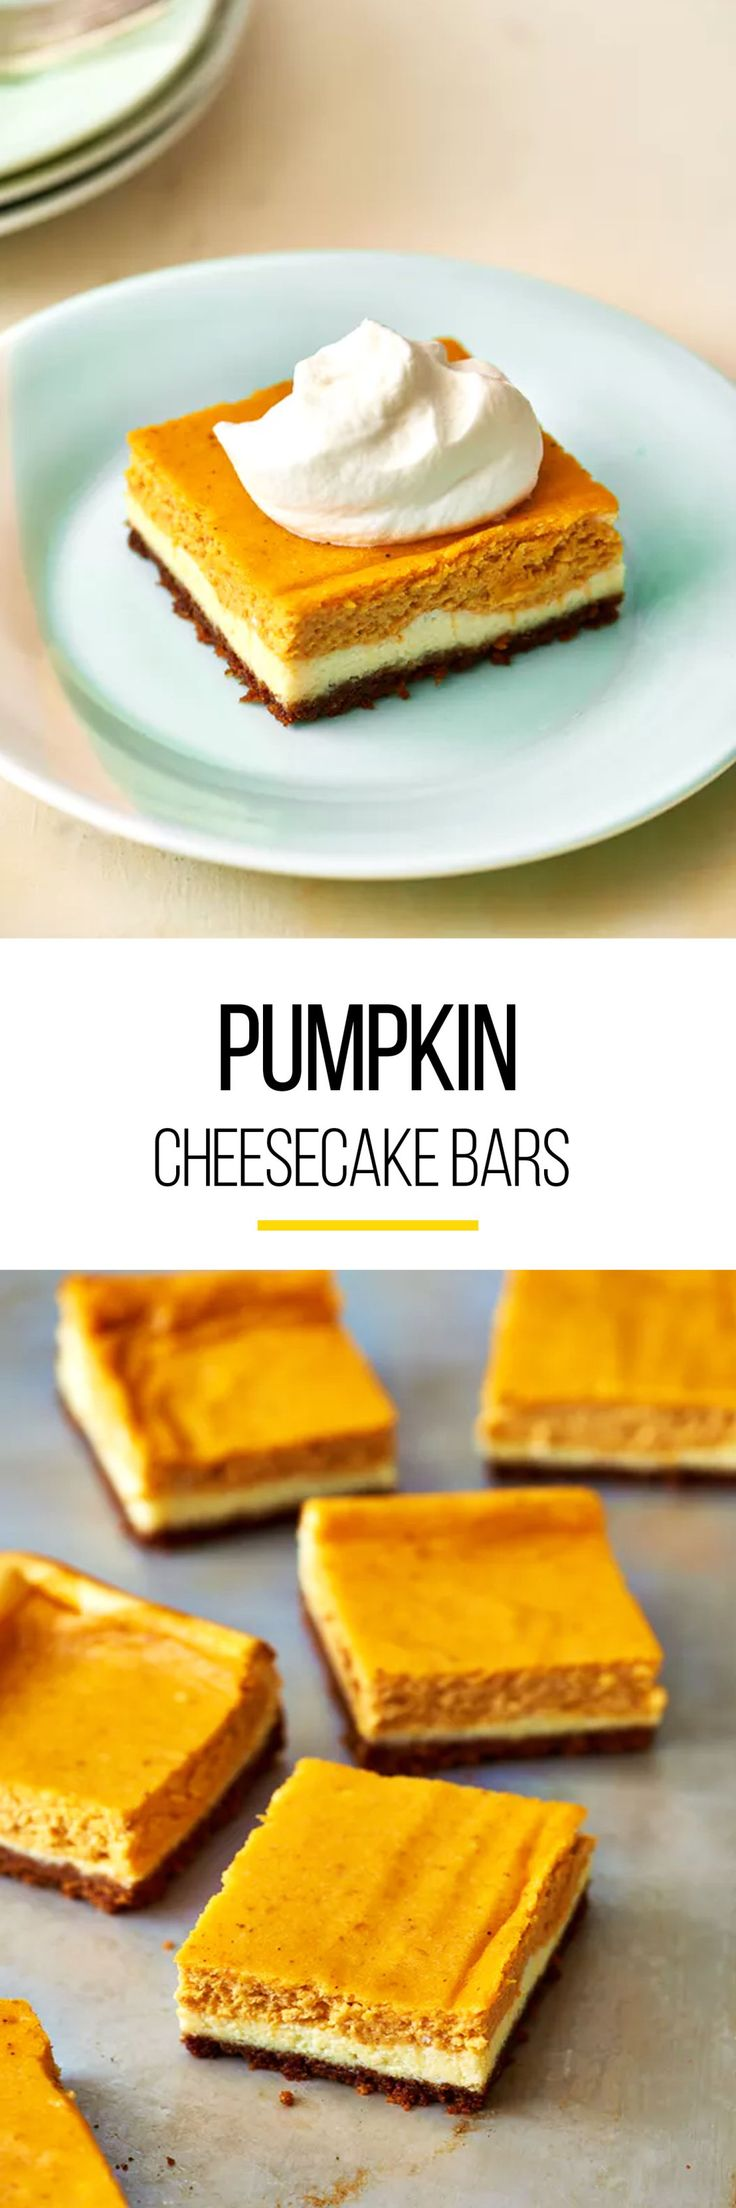 Eat them now, or stash them in the freezer for Thanksgiving! These pumpkin cheesecake bars are going to make your fall super sweet. What's great about this sweet treat is that it is perfect for both meat eaters and vegetarians alike, so everyone can enjoy. This pumpkin cheesecake bar recipe is easy to make, freezer-friendly and healthy to munch on. TO make these, you'll need whole graham crackers, granulated sugar, unsalted butter, cream cheese, eggs, pumpkin purée and ground cinnamon.